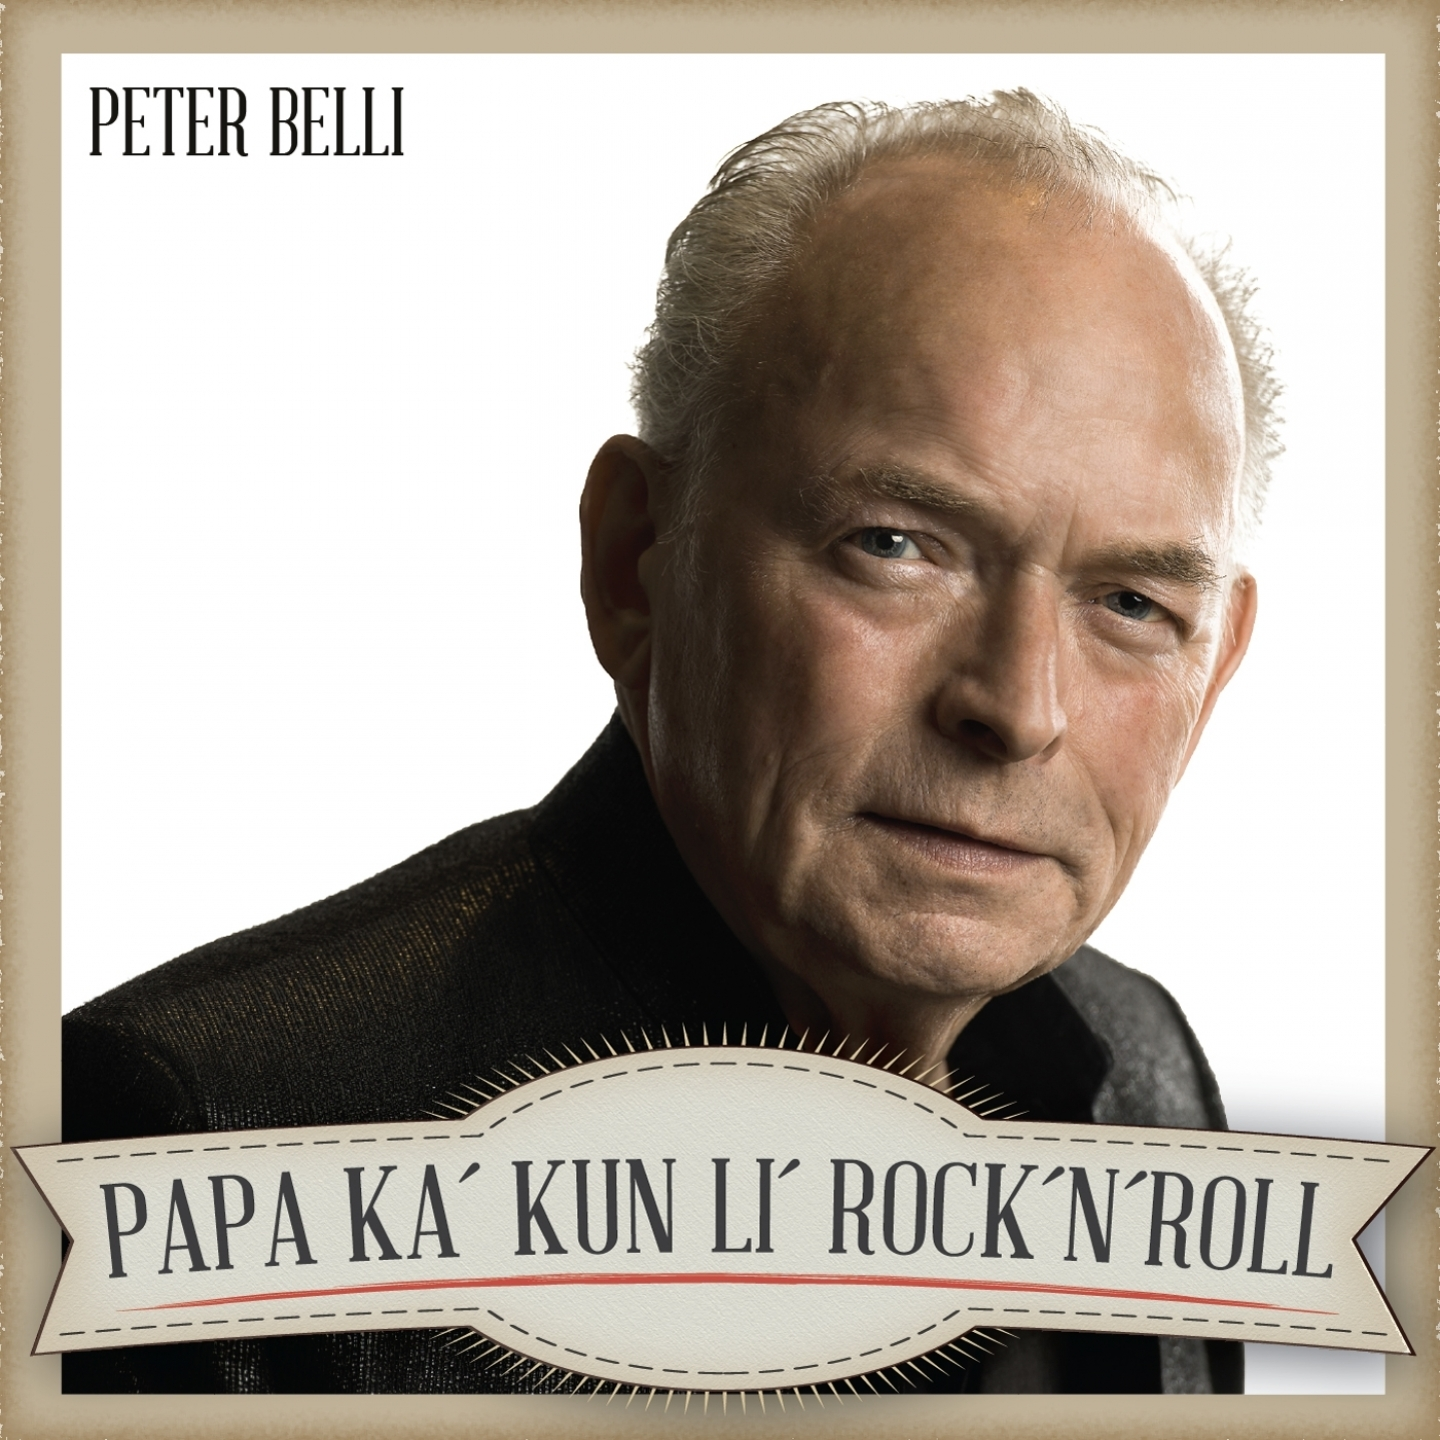 Peter Belli – 'Papa Ka' Kun Li Rock'n'Roll' (Single)